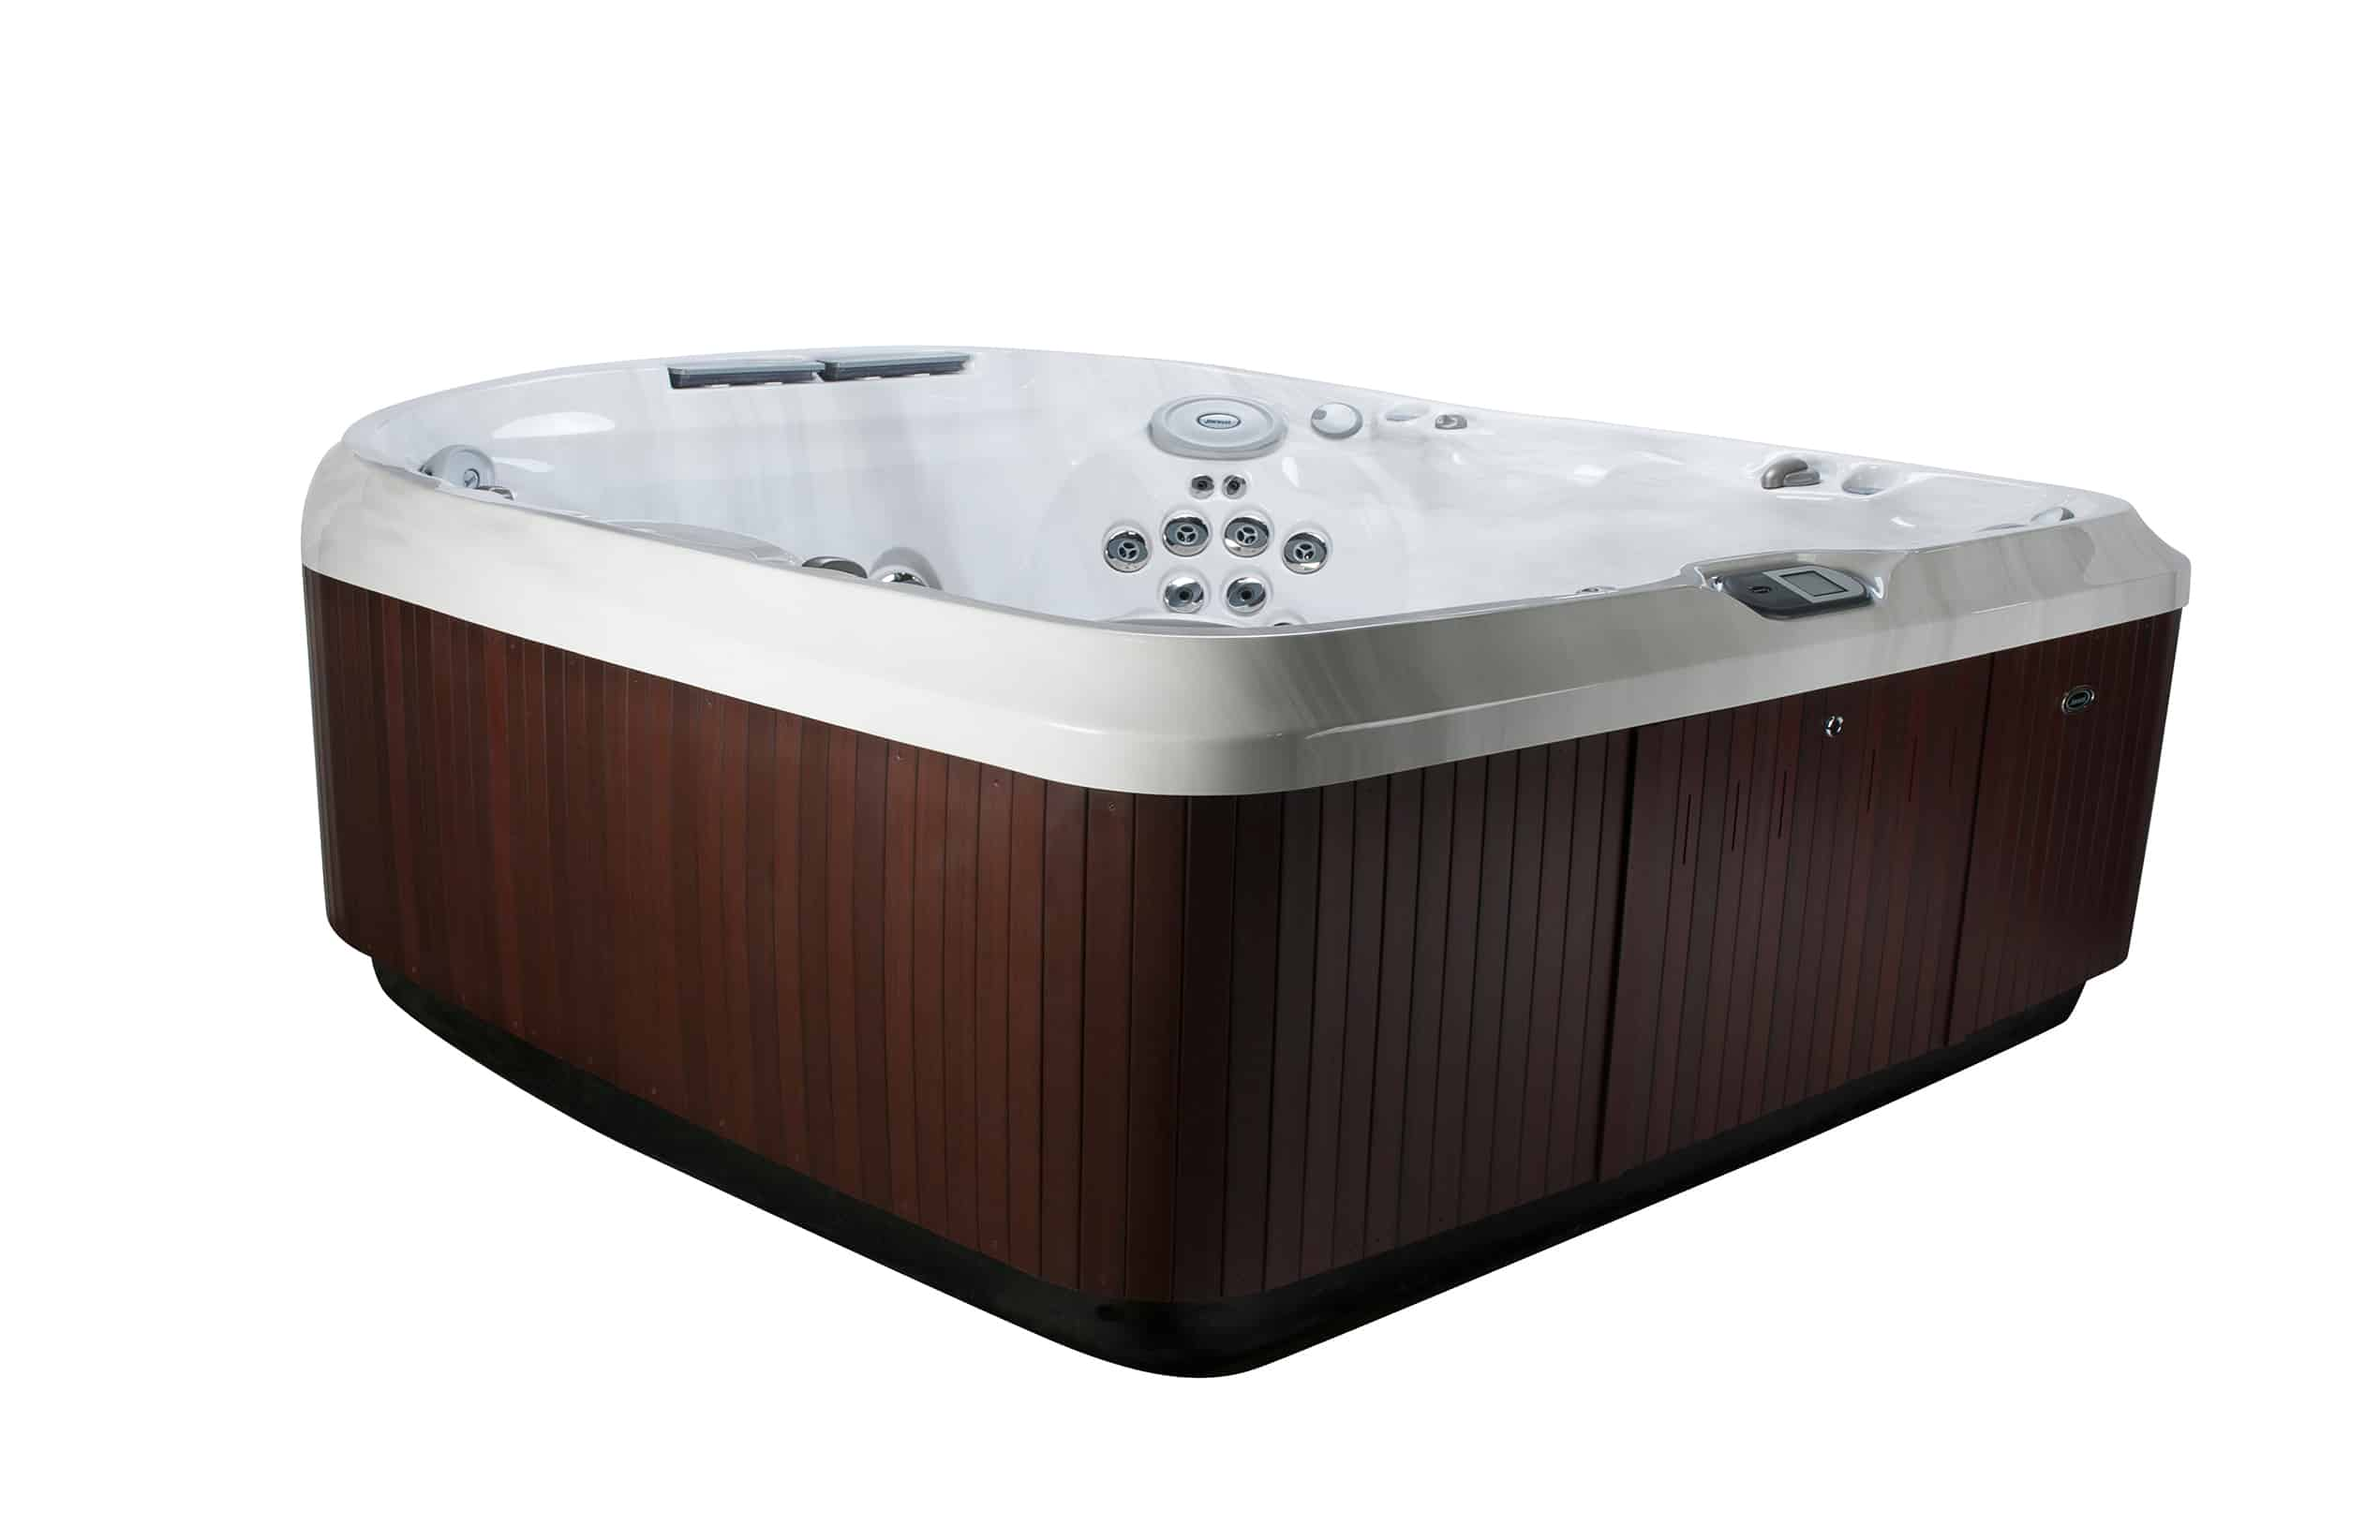 Jacuzzi Brand Pool Pump Jacuzzi J 480 6 Person Hot Tub Ultra Modern Pool And Patio